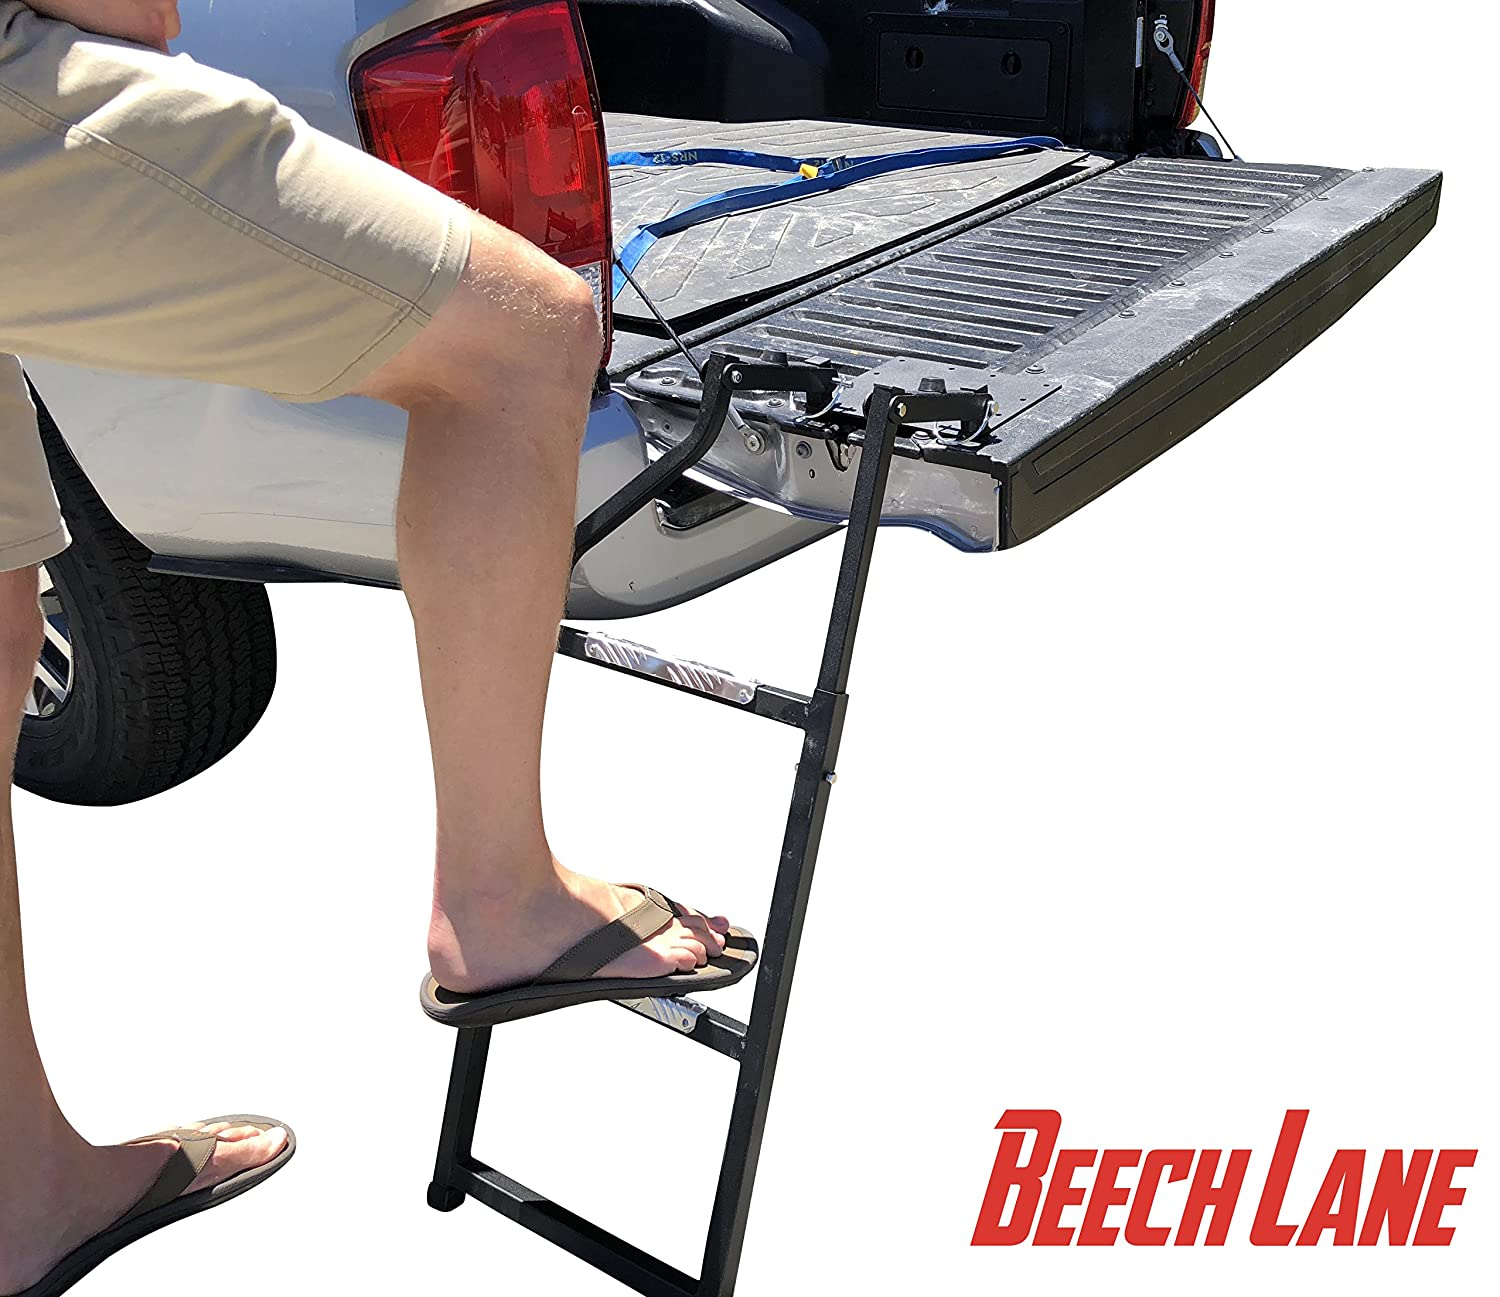 Durable Aluminum Step Grip Plates and Sturdy Rubber Ladder Feet Beech Lane Pickup Truck Tailgate Ladder Stainless Steel Self Drilling Hex Screws for Easy Install Universal Fit